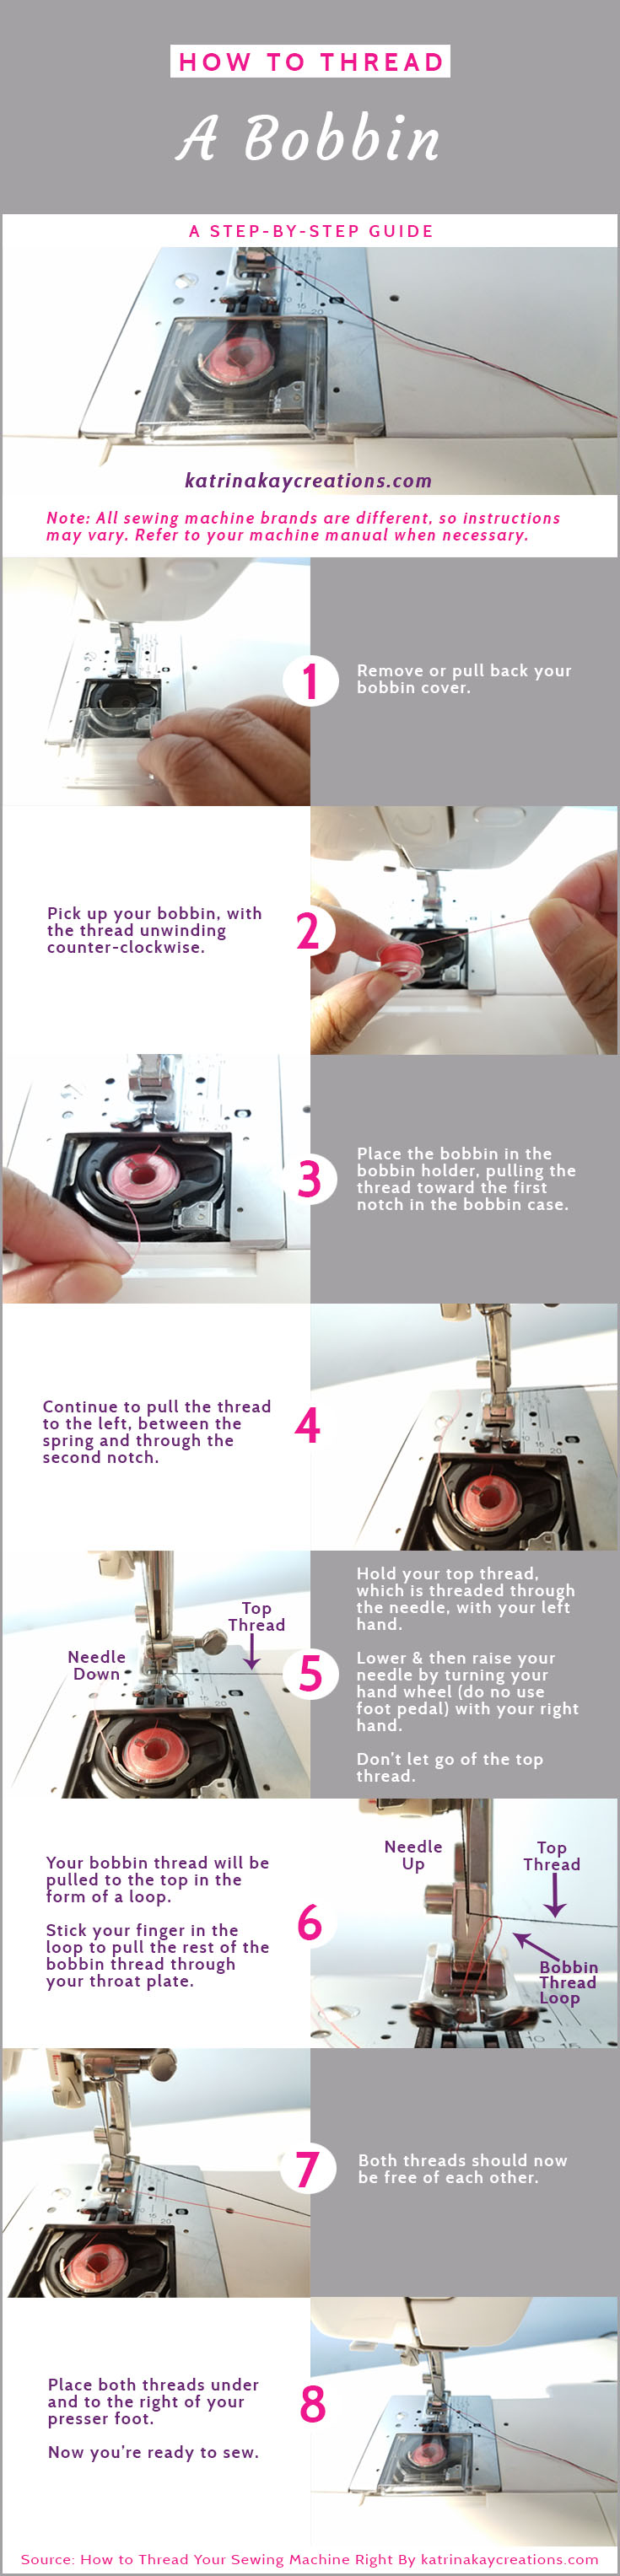 How To Thread Your Sewing Machine | How To Wind A Bobbin | How To Thread A Bobbin | If you're having a problem winding your bobbin or threading your sewing machine & bobbin, this blog post will give you helpful tips about the guides on your machine and how to use them. And if you don't have a user manual for your sewing machine, I give resources where you might be able to find one.